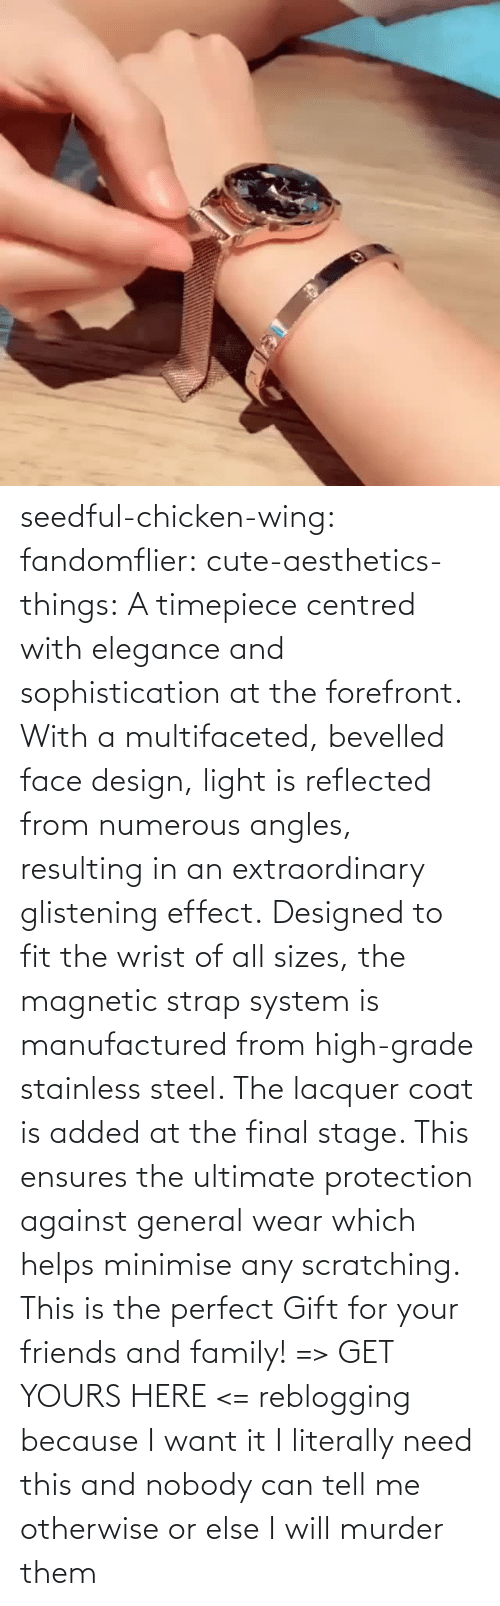 I Literally: seedful-chicken-wing: fandomflier:  cute-aesthetics-things:   A timepiece centred with elegance and sophistication at the forefront. With a multifaceted, bevelled face design, light is reflected from numerous angles, resulting in an extraordinary glistening effect. Designed to fit the wrist of all sizes, the magnetic strap system is manufactured from high-grade stainless steel. The lacquer coat is added at the final stage. This ensures the ultimate protection against general wear which helps minimise any scratching. This is the perfect Gift for your friends and family! => GET YOURS HERE <=   reblogging because I want it  I literally need this and nobody can tell me otherwise or else I will murder them